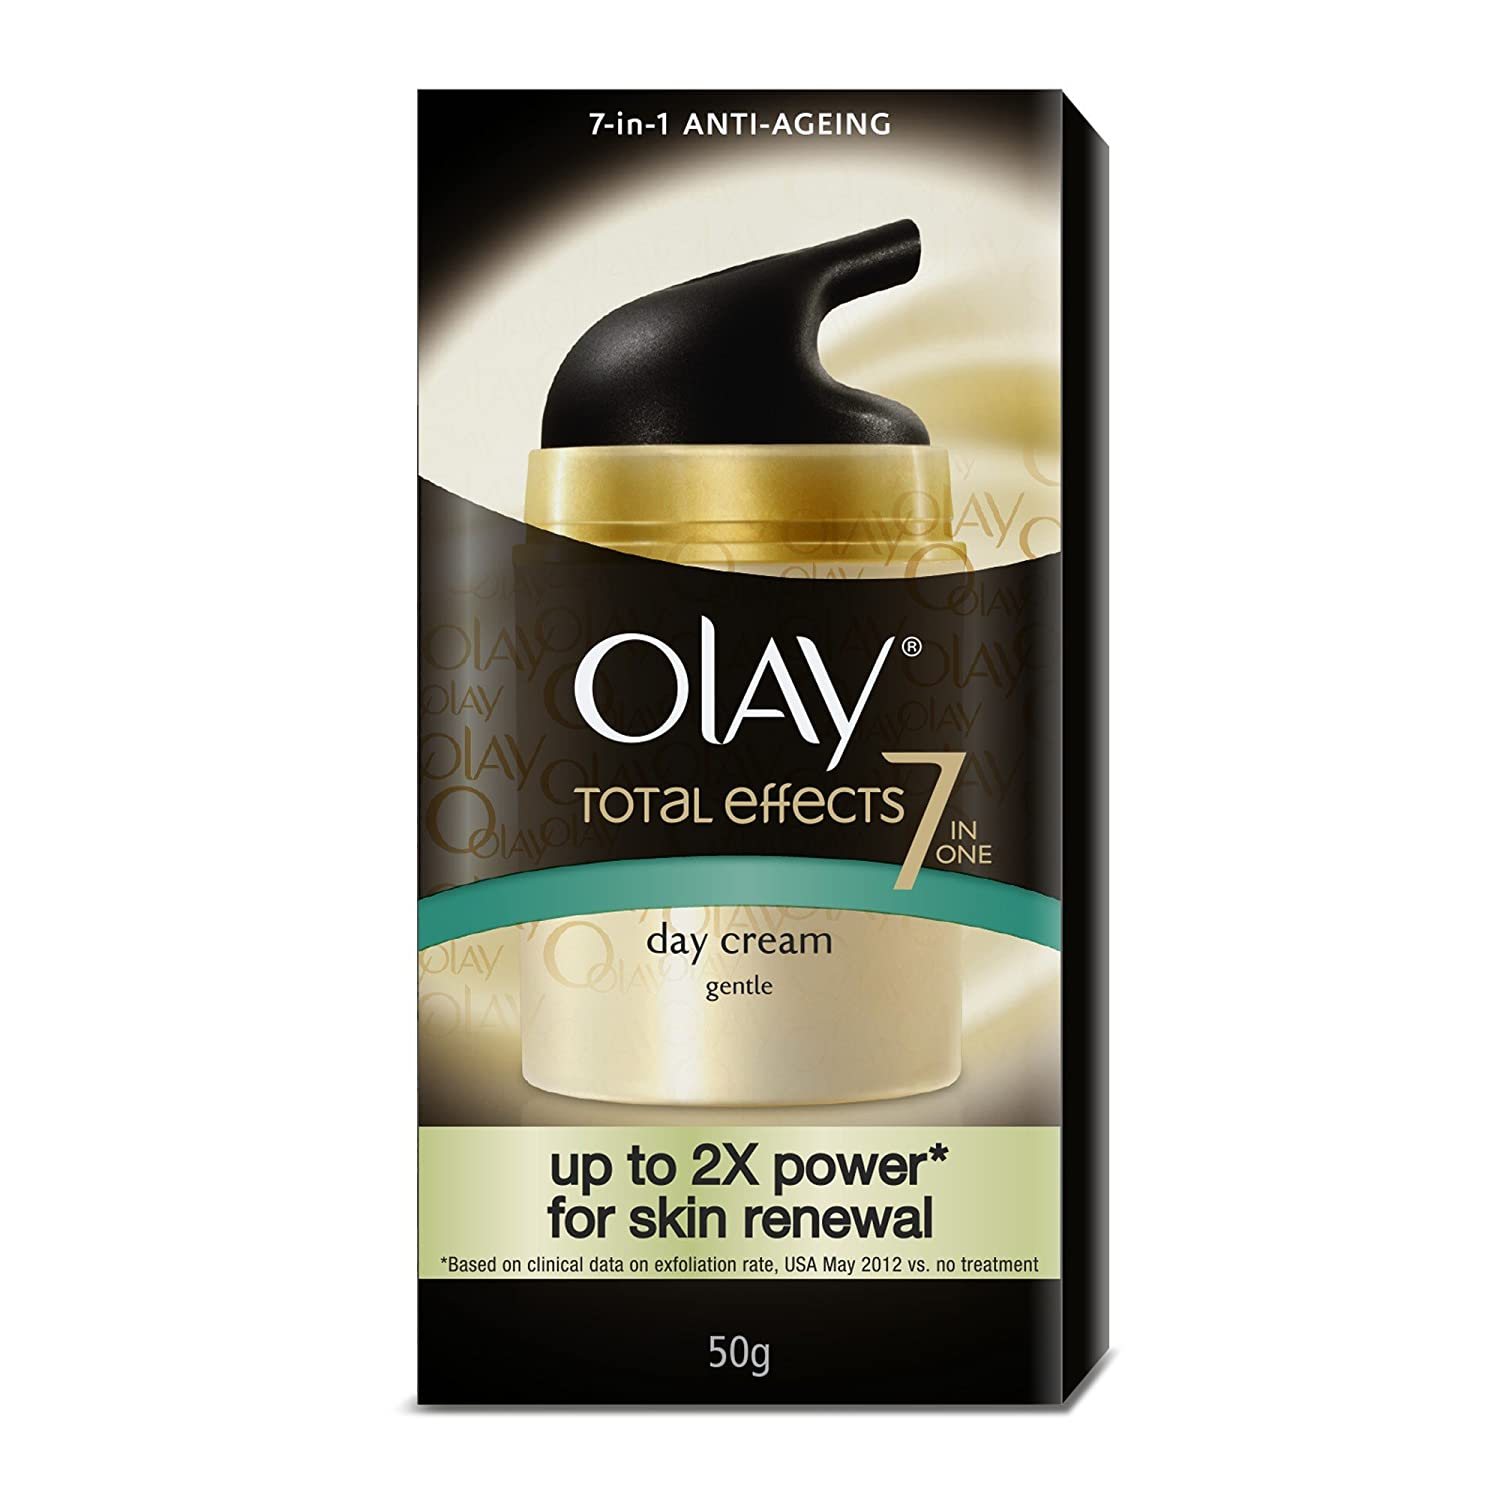 Olay Total Effects 7 in 1 Skin Cream (50g) low price